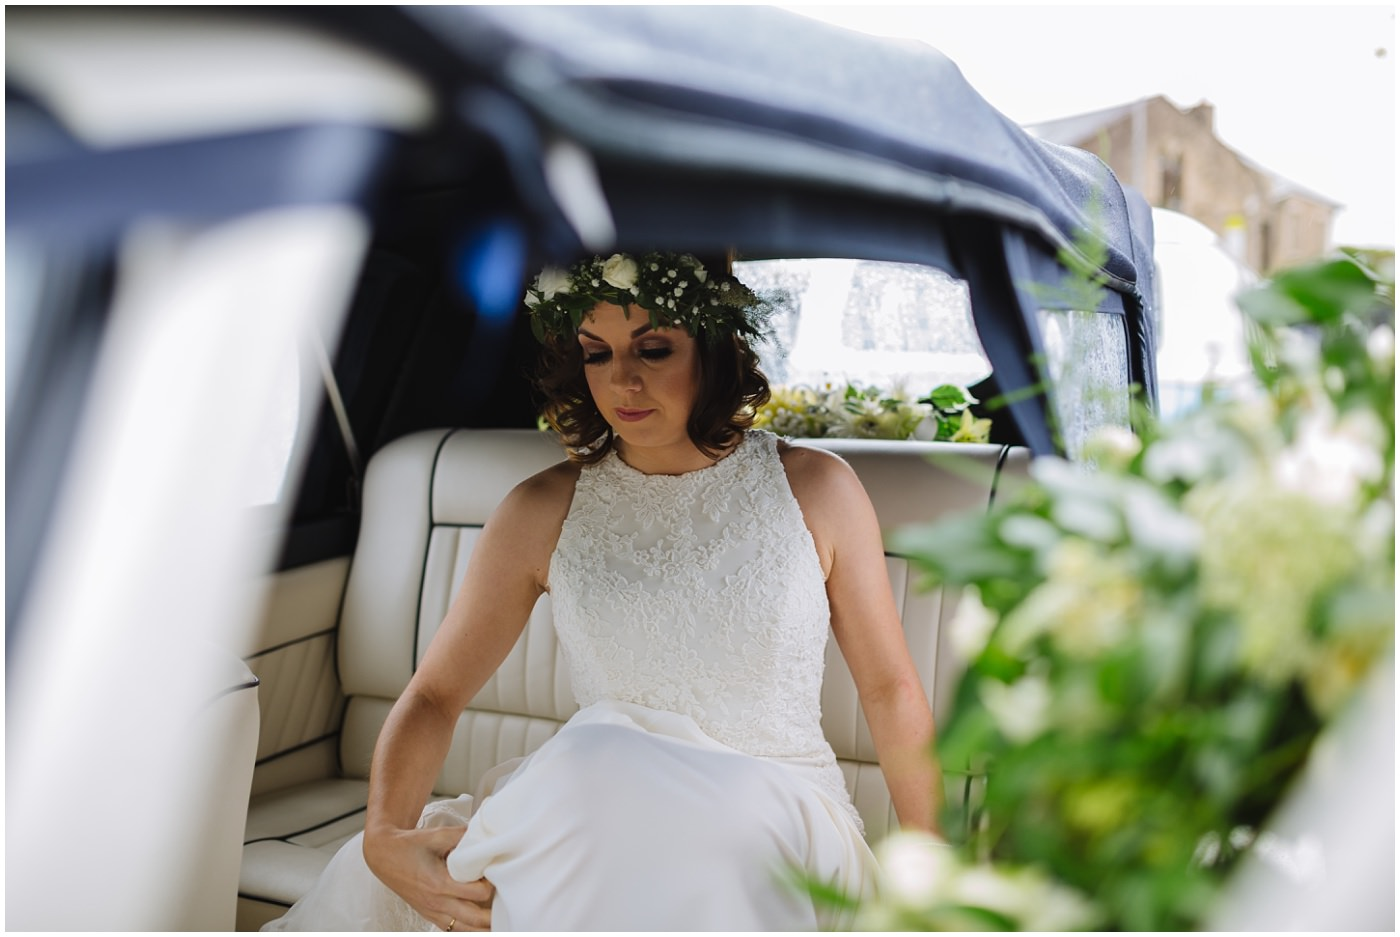 bride arrives at church in wedding car